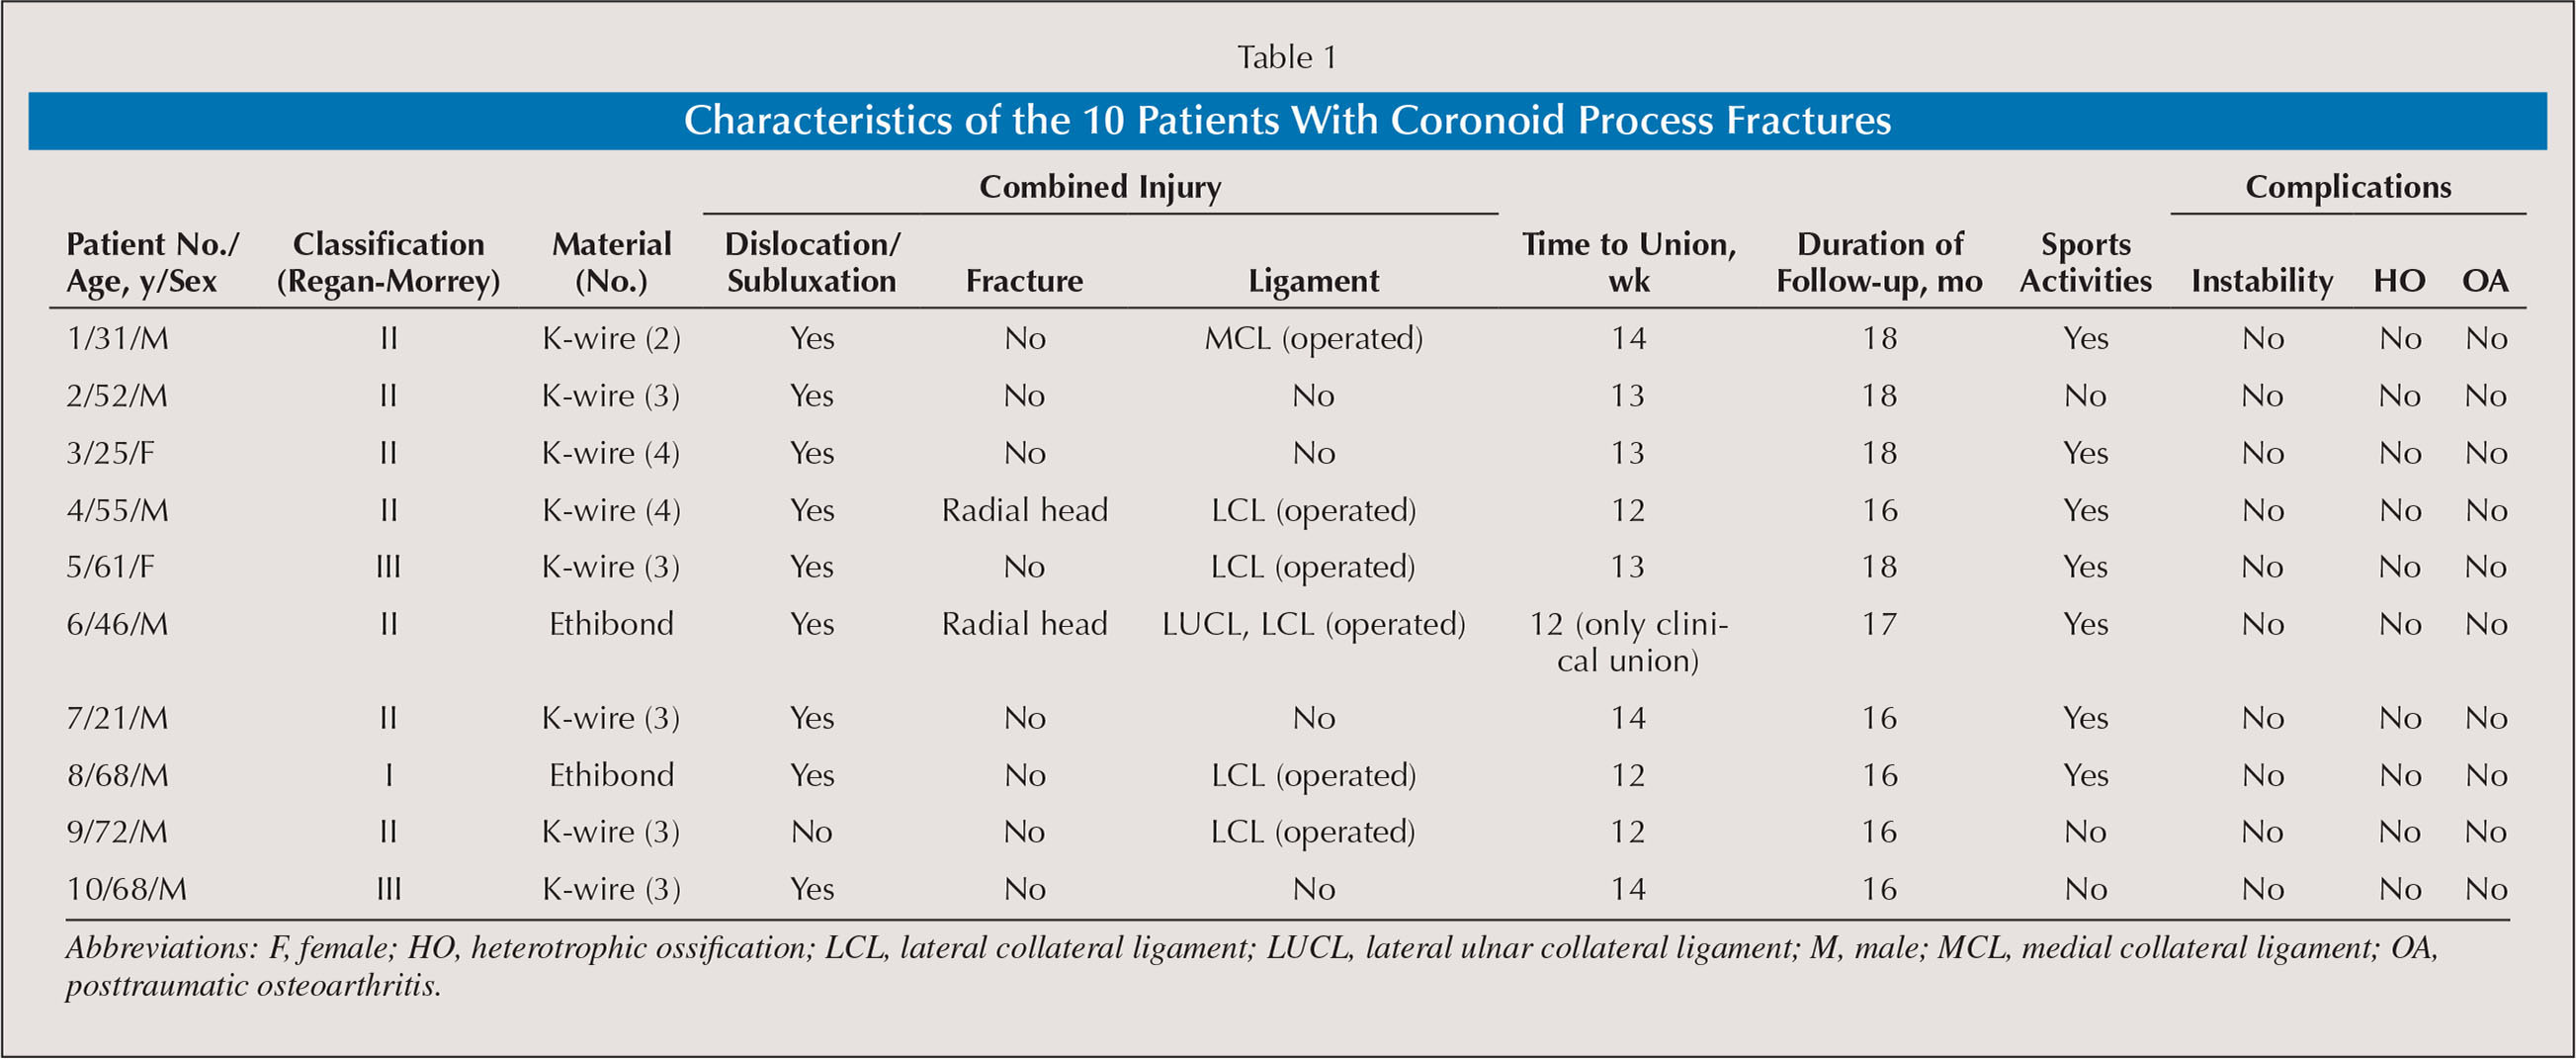 Characteristics of the 10 Patients With Coronoid Process Fractures